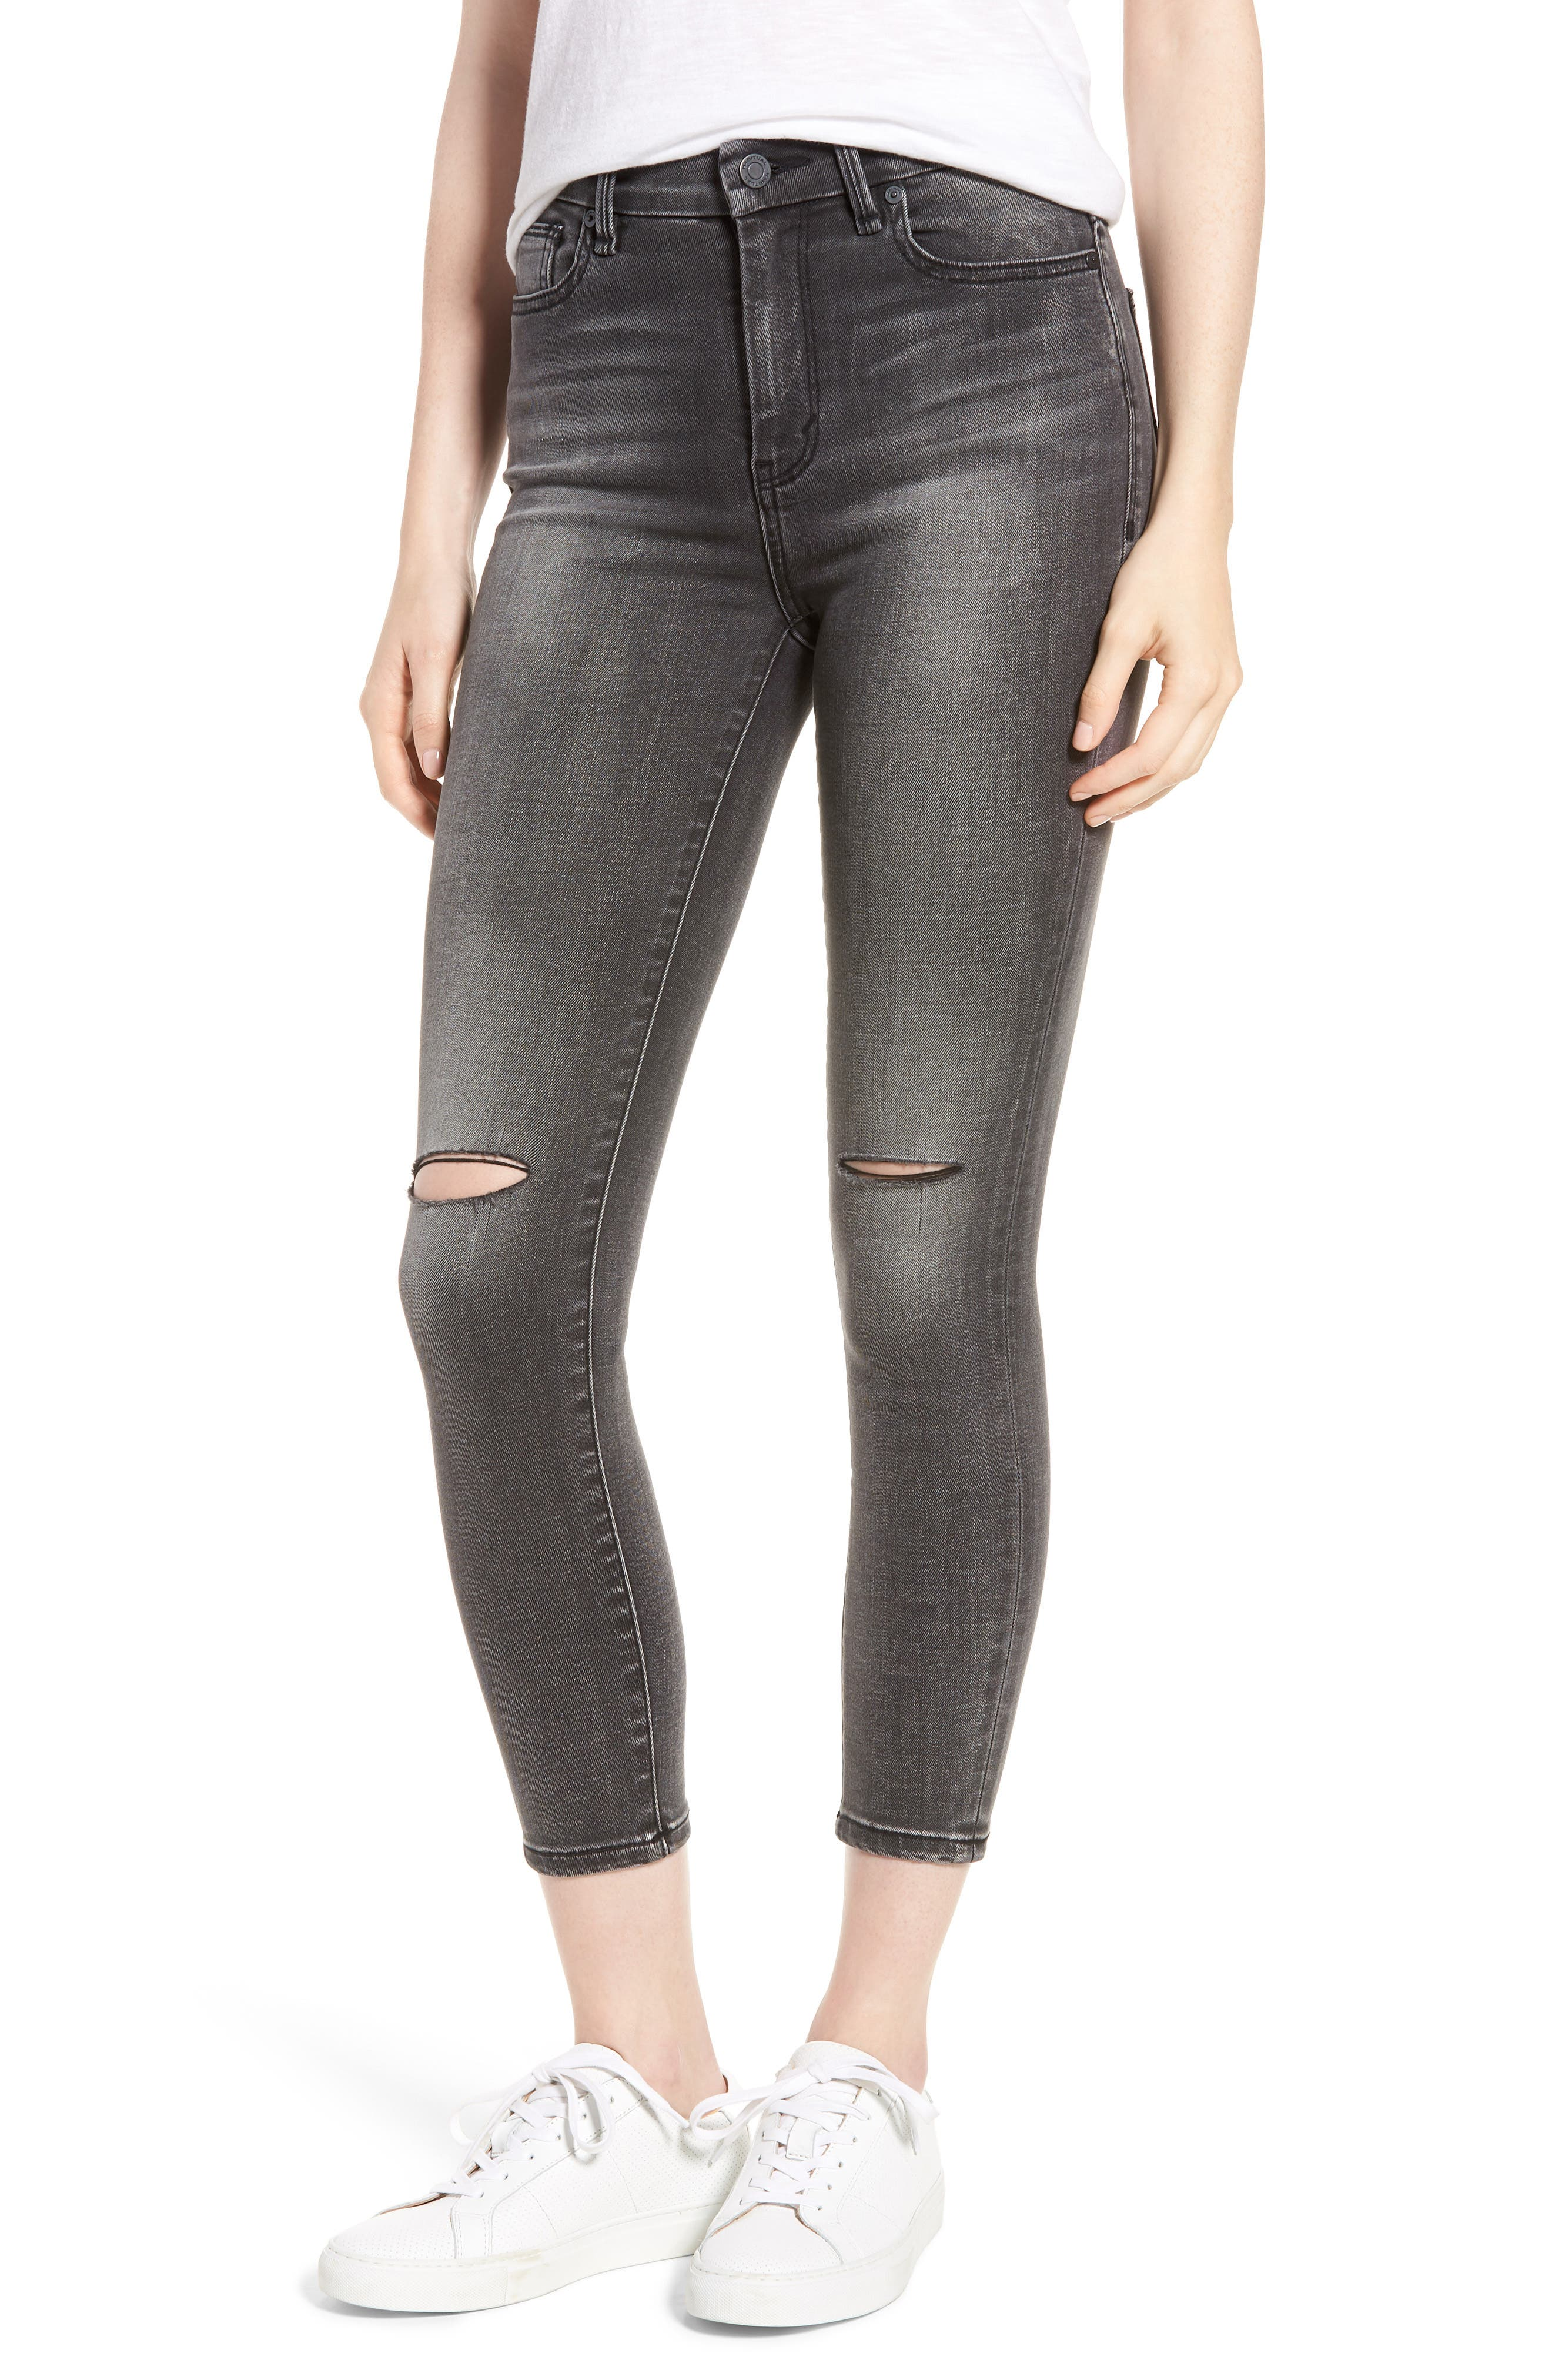 Cressa High Rise Ankle Skinny Jeans,                             Main thumbnail 1, color,                             022